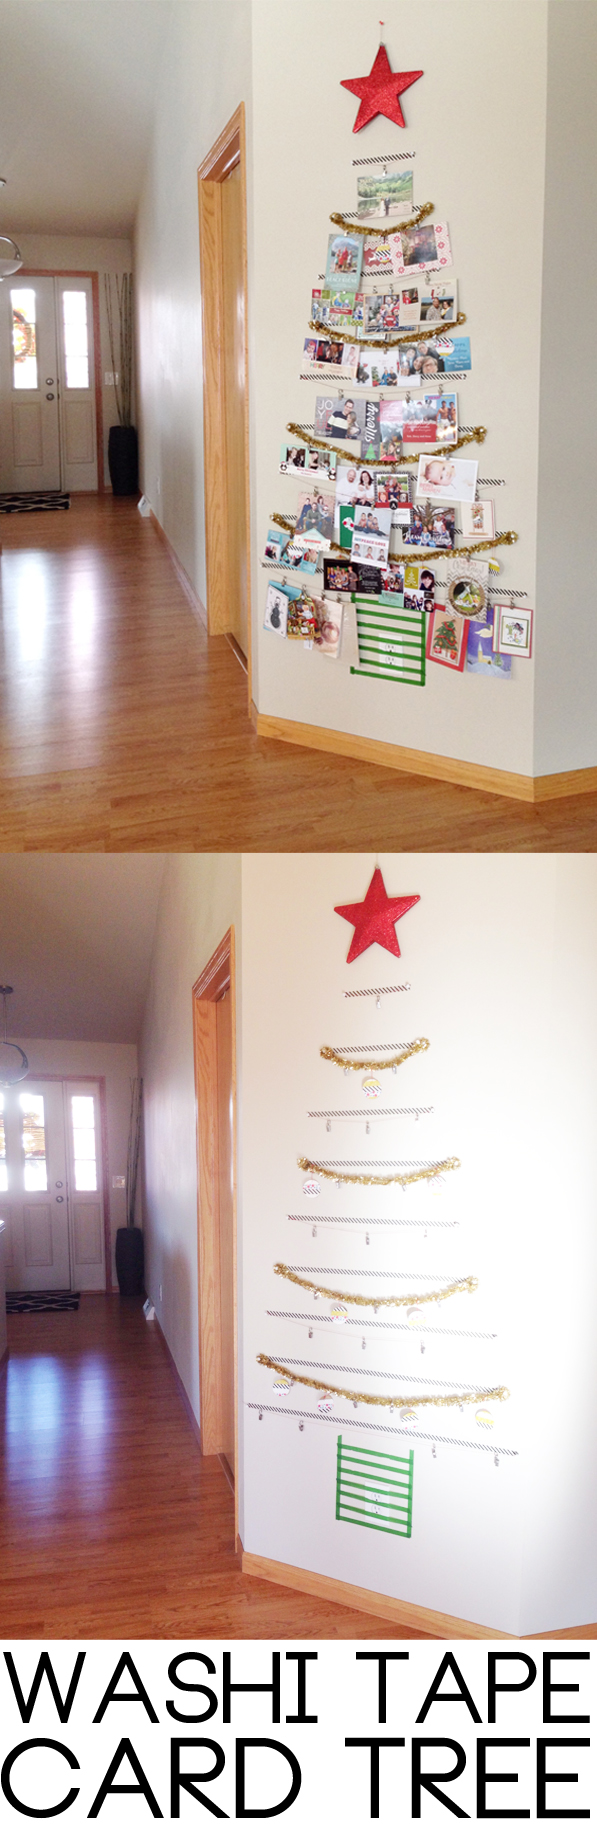 Christmas card display idea - simple DIY washi tape tree to stick on a wall or on a door to display Christmas cards. A great homemade Christmas card display idea that is easy to make and will take up less space than a traditional Christmas card holder